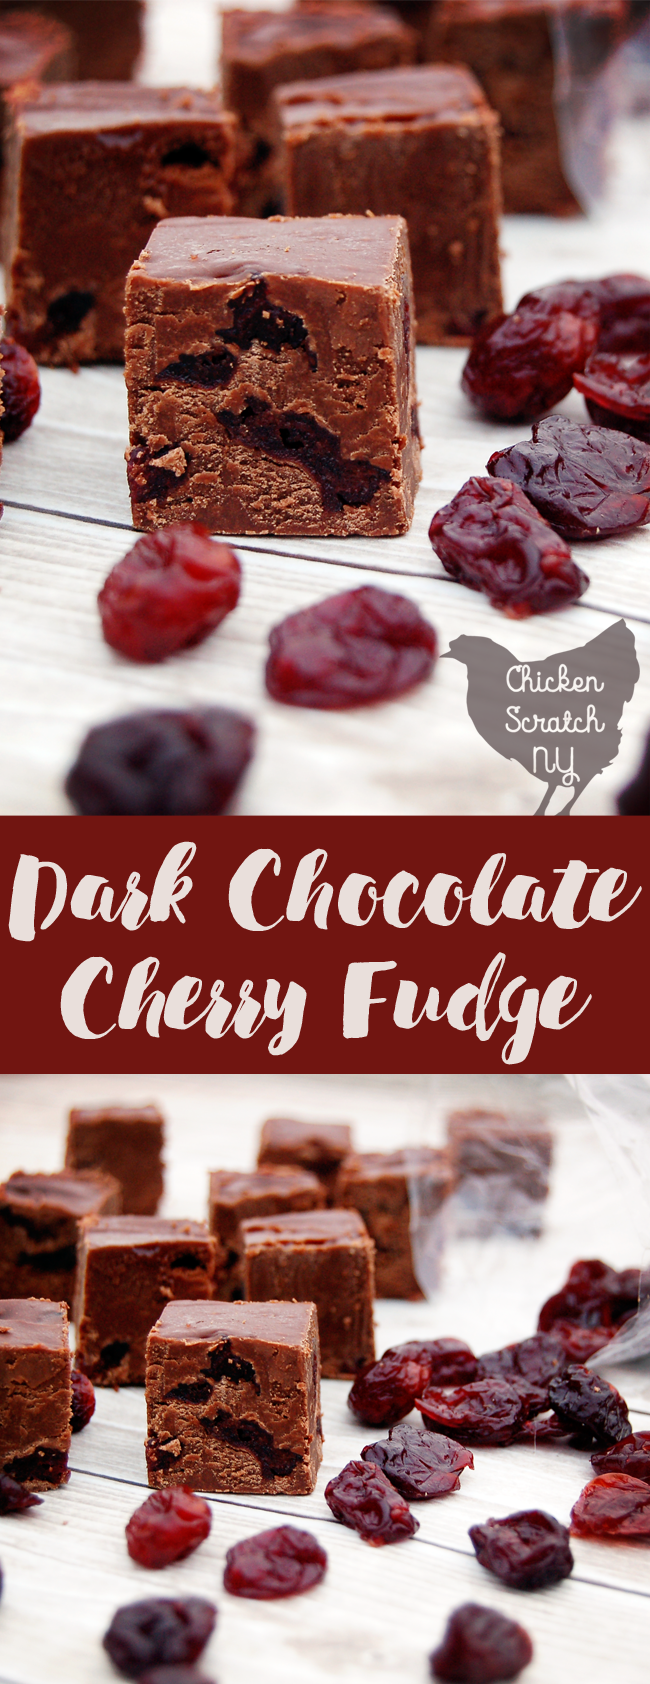 Whip up a decadent dark chocolate cherry fudge with this quick stove top recipe. Overflowing with tart cherries this sweet treat is sure to be a holiday hit